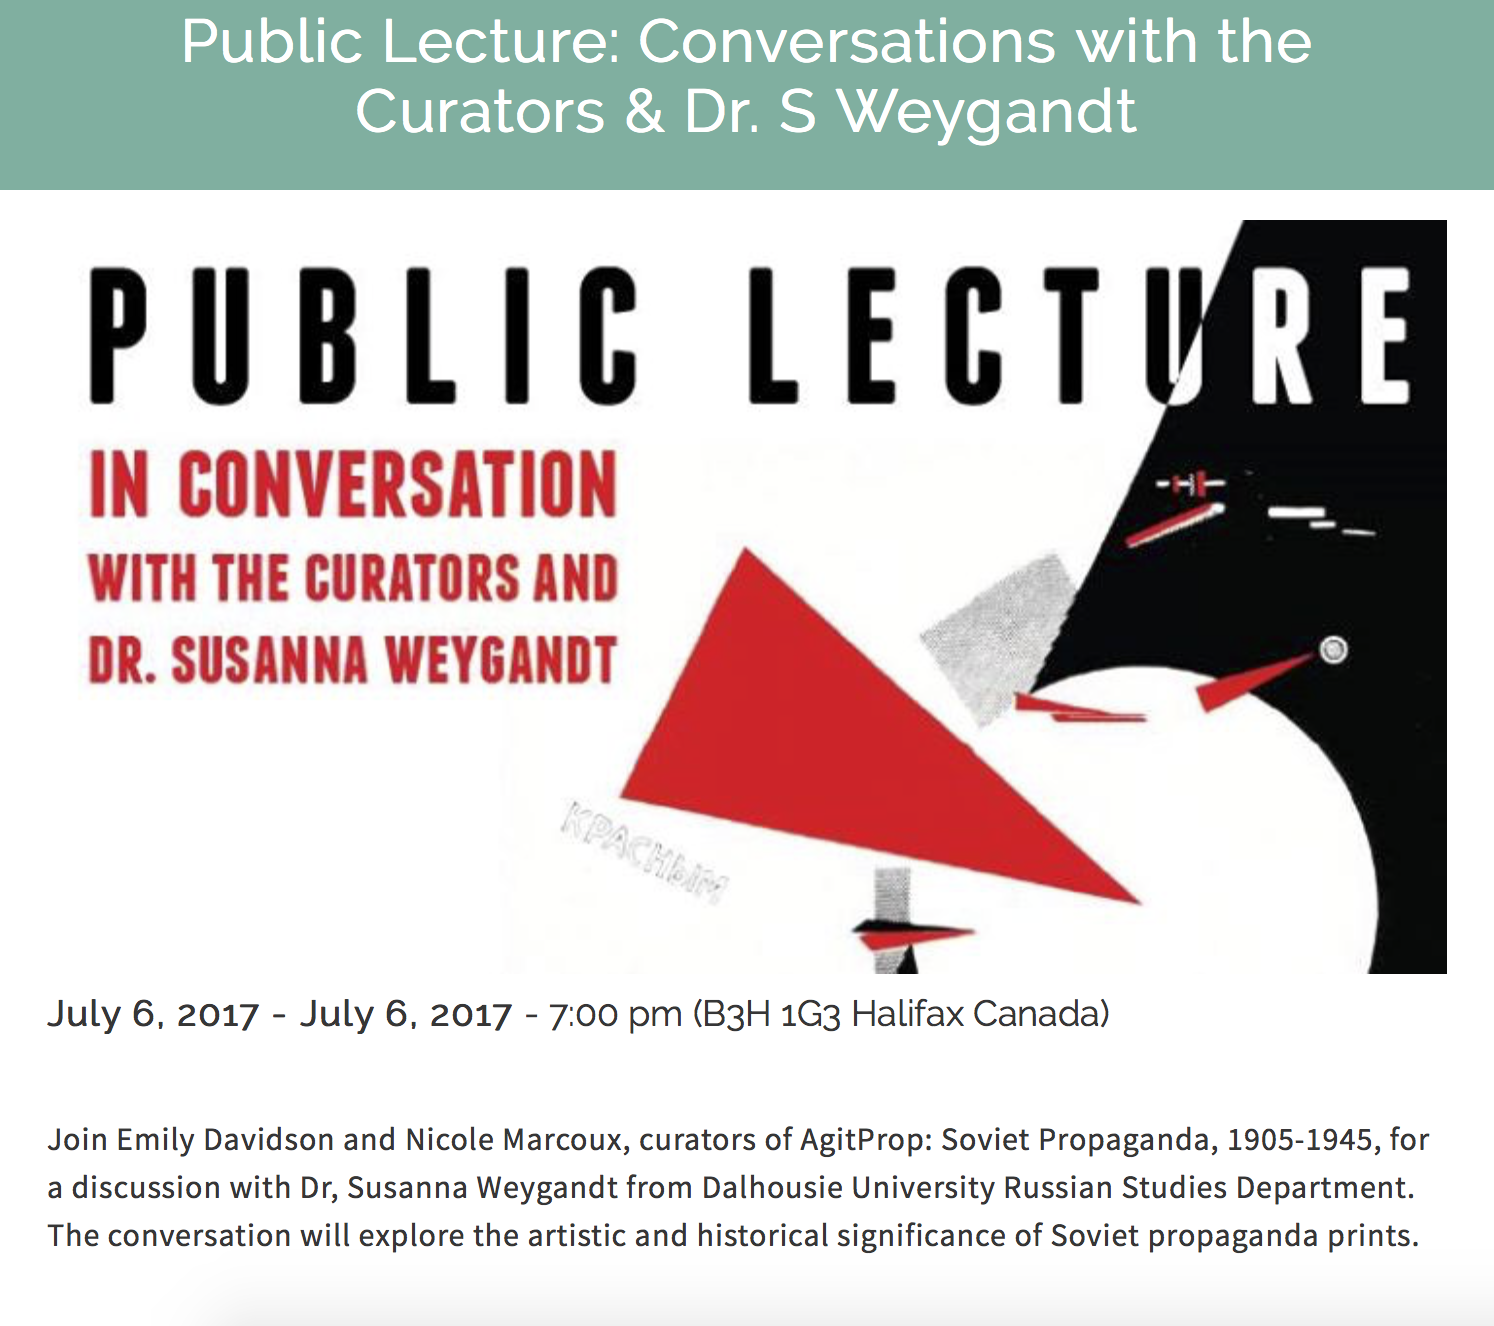 Public lecture about Soviet Print Exhibition, St Mary's Art Gallery, Nova Scotia